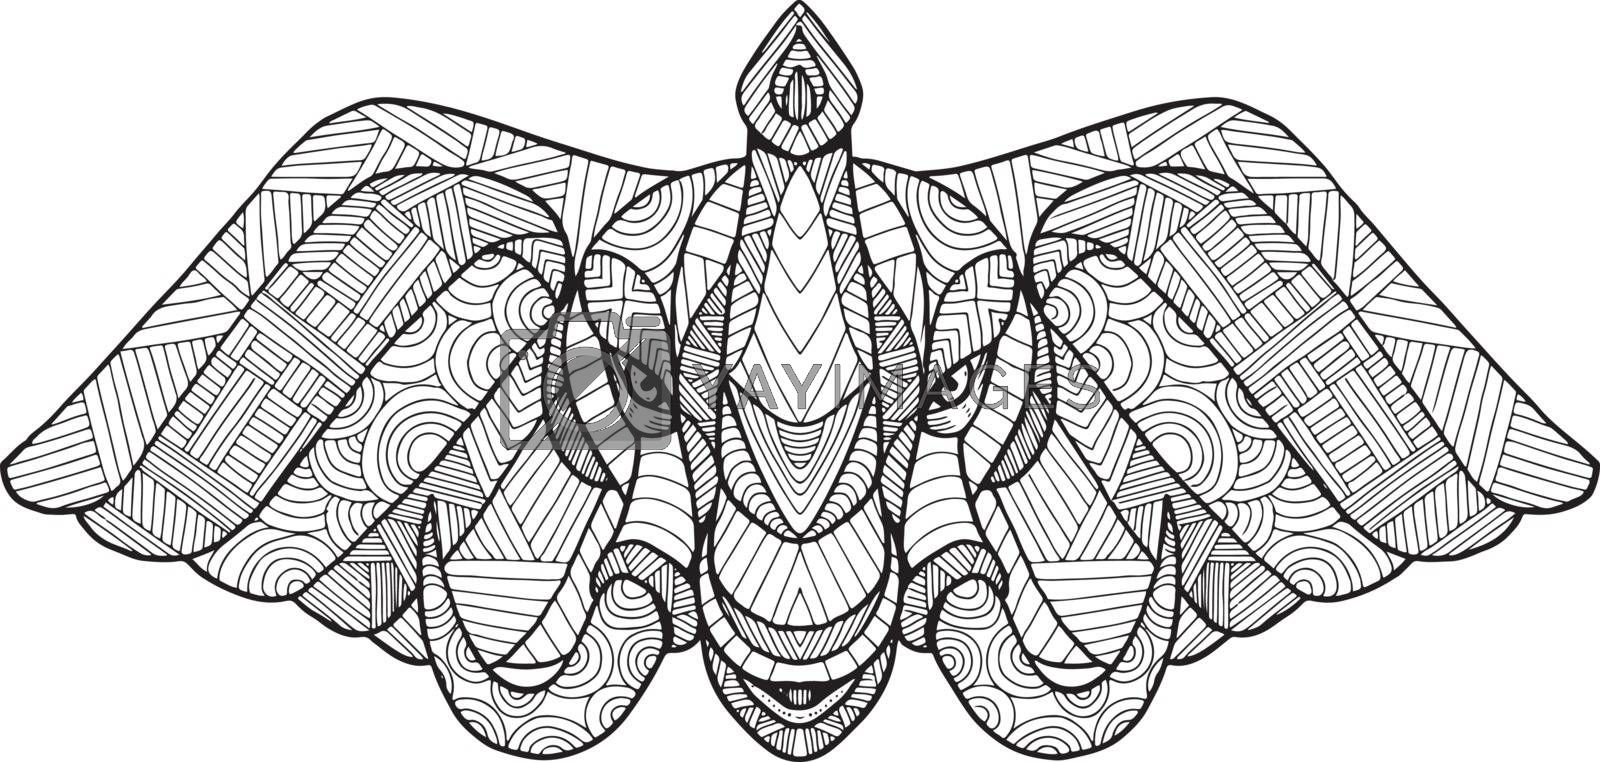 Zentagle inspired and tangled mandala illustration of head of a bull african elephant with tusk viewed from front black and white on isolated backgound.